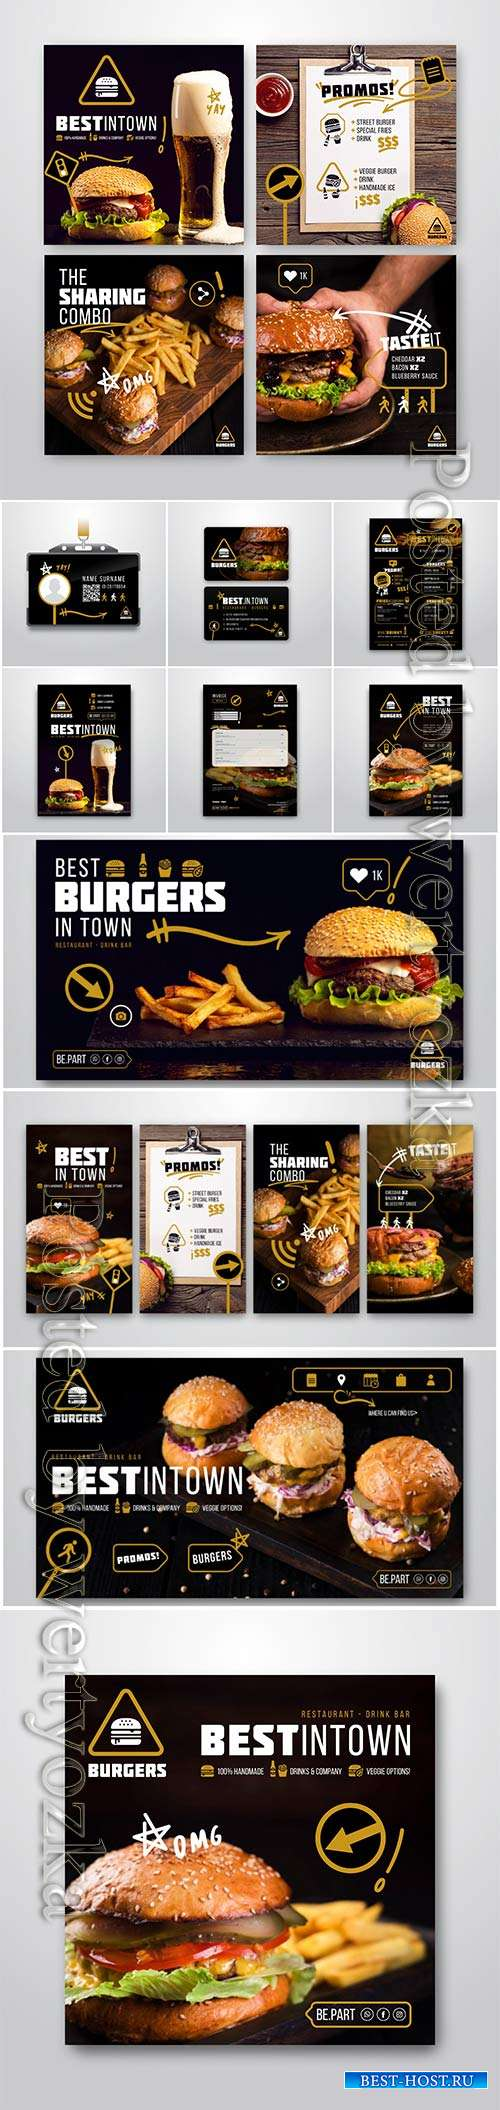 Burger restaurant flyer vector template